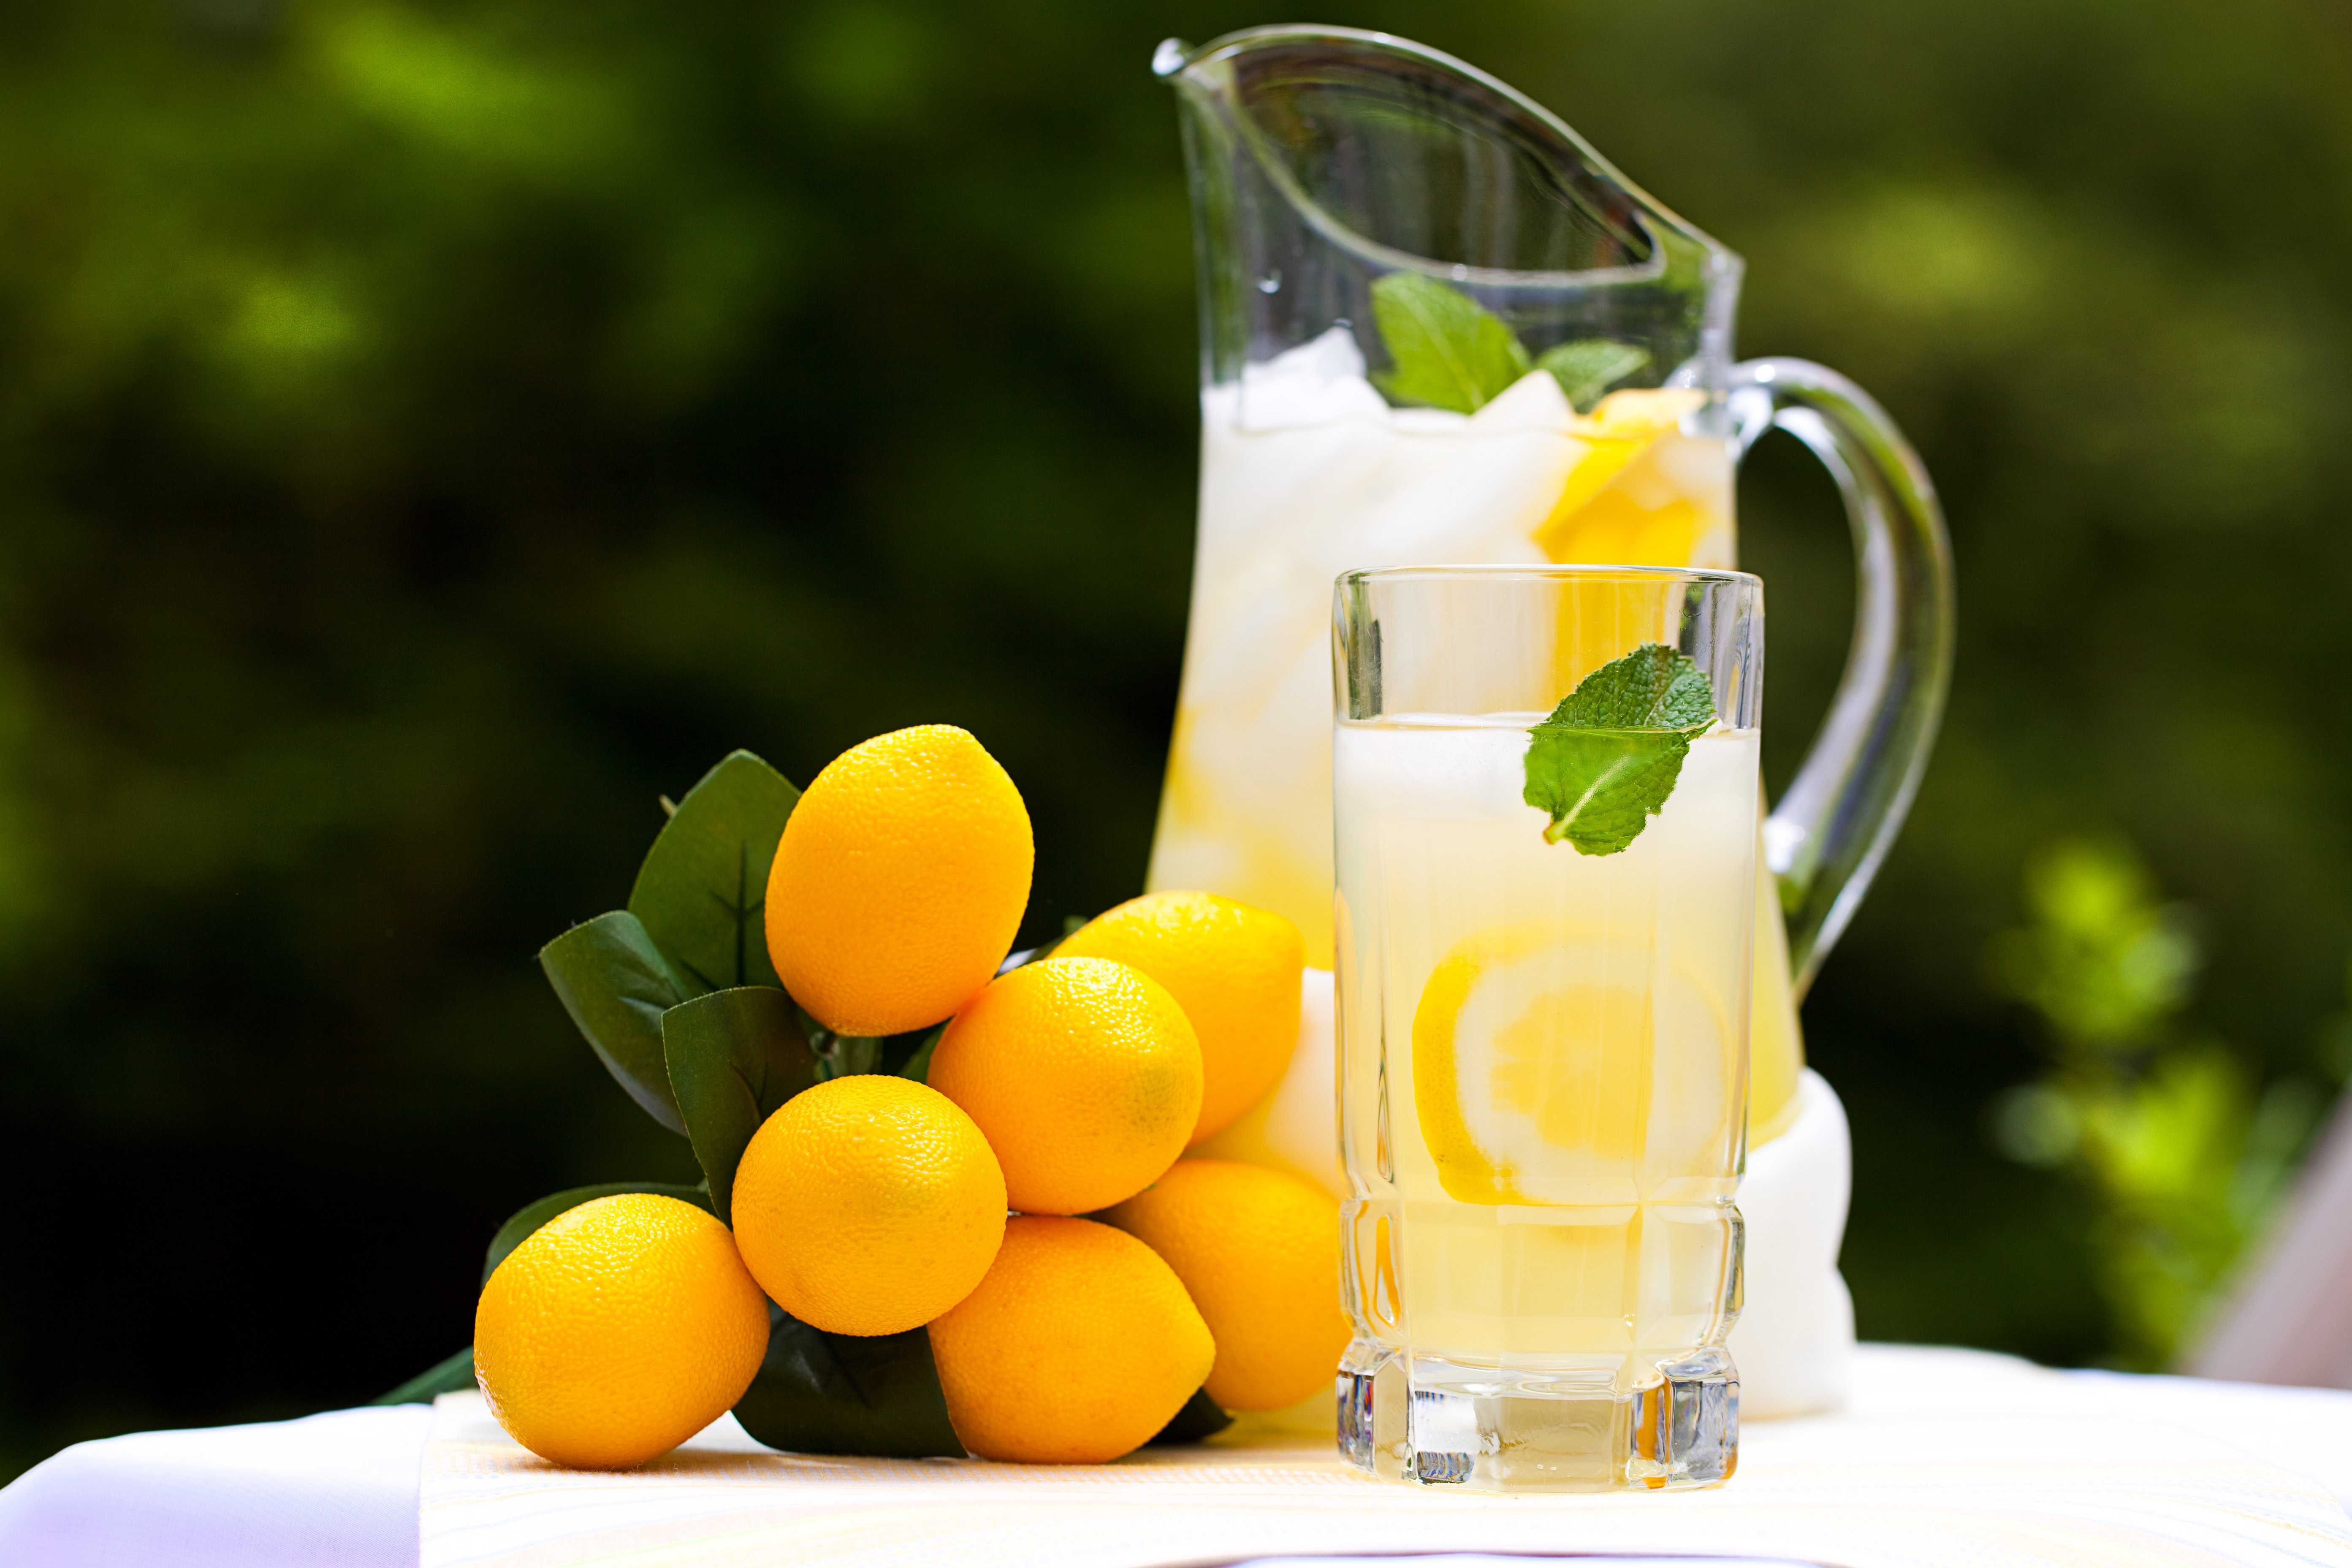 lemonade and lemons_53368357